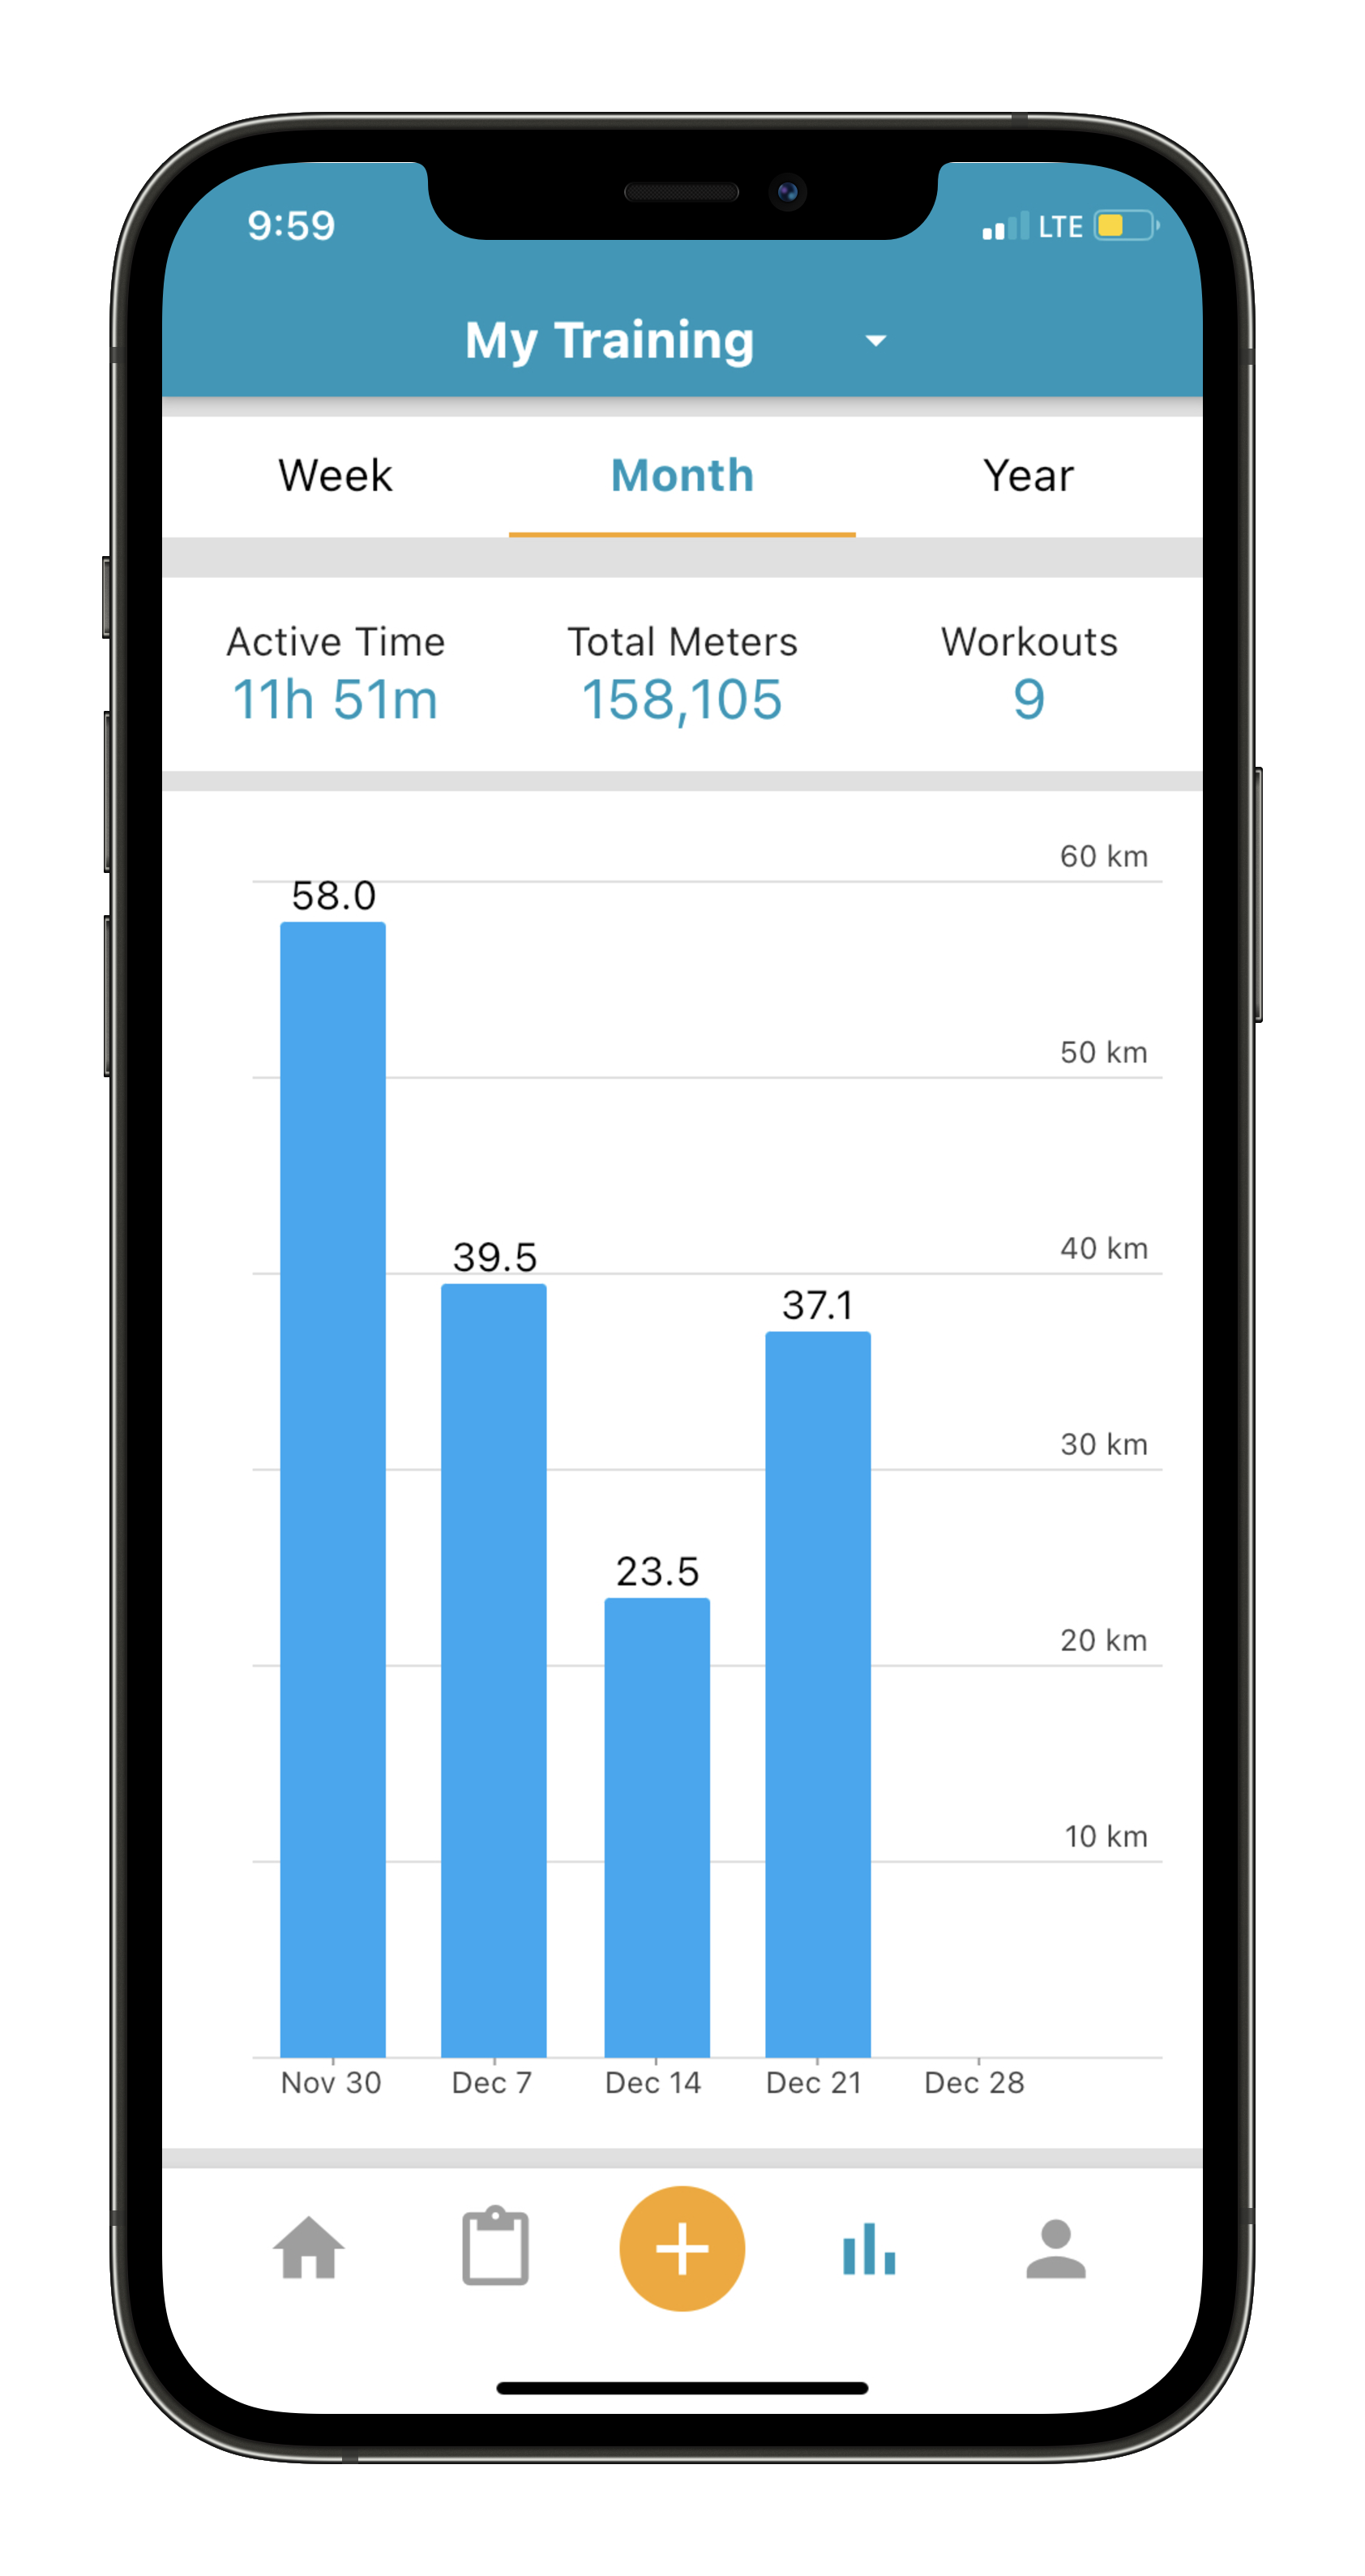 iPhone running CrewLAB app that shows charts displaying workout data